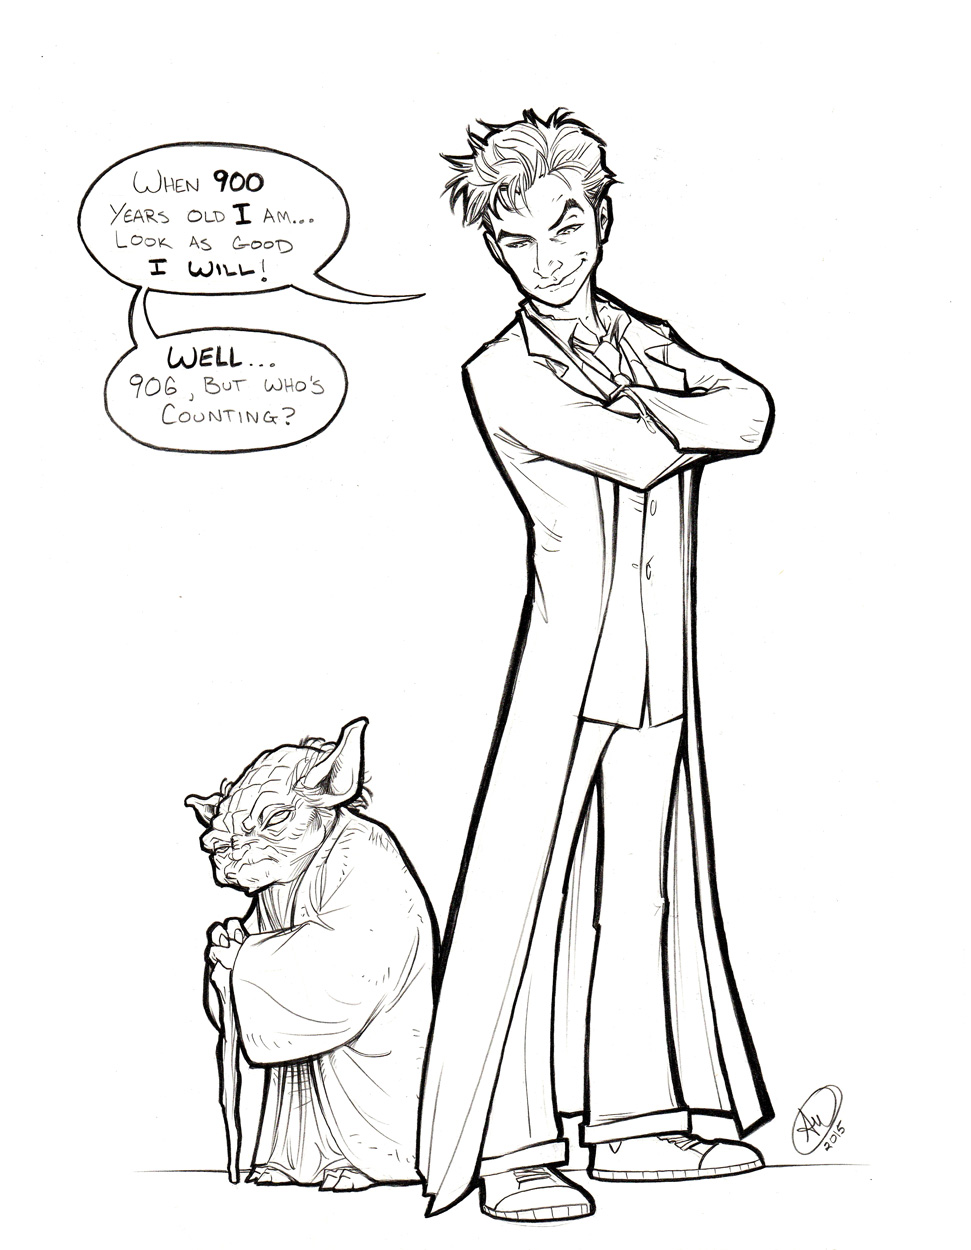 10th Doctor and Yoda by AdamWithers